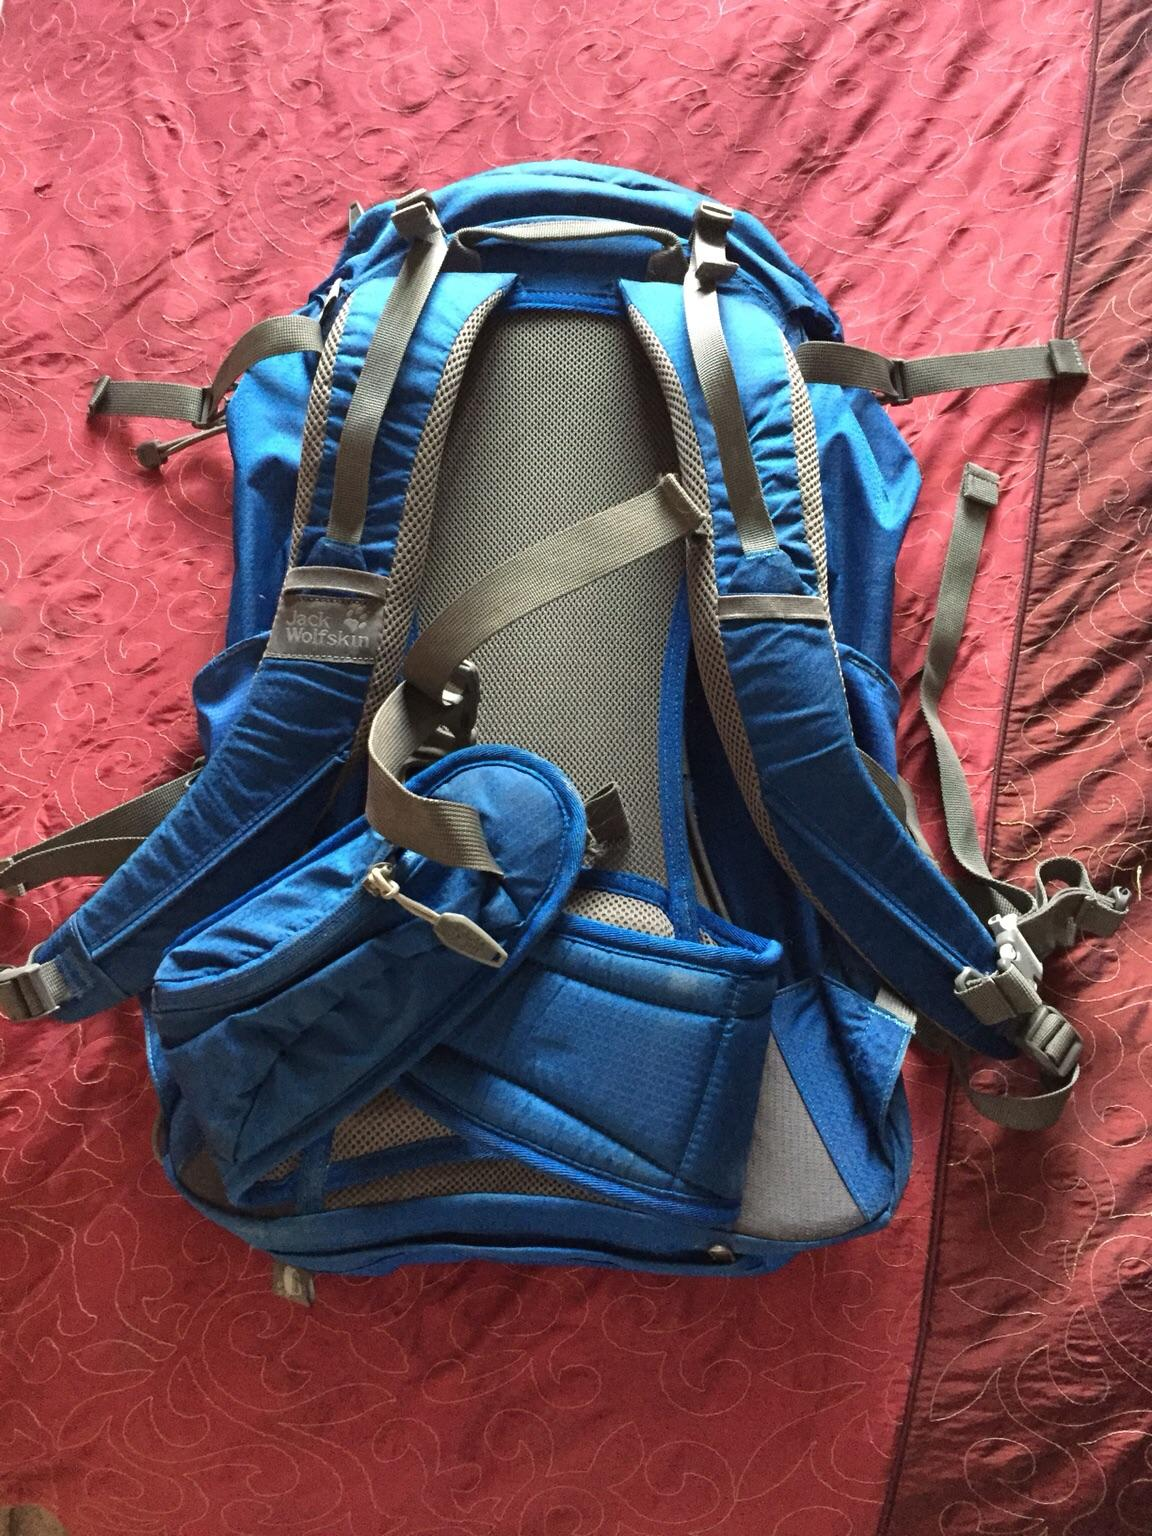 Jack wolf skin hike backpack in CM2 Galleywood for £40.00